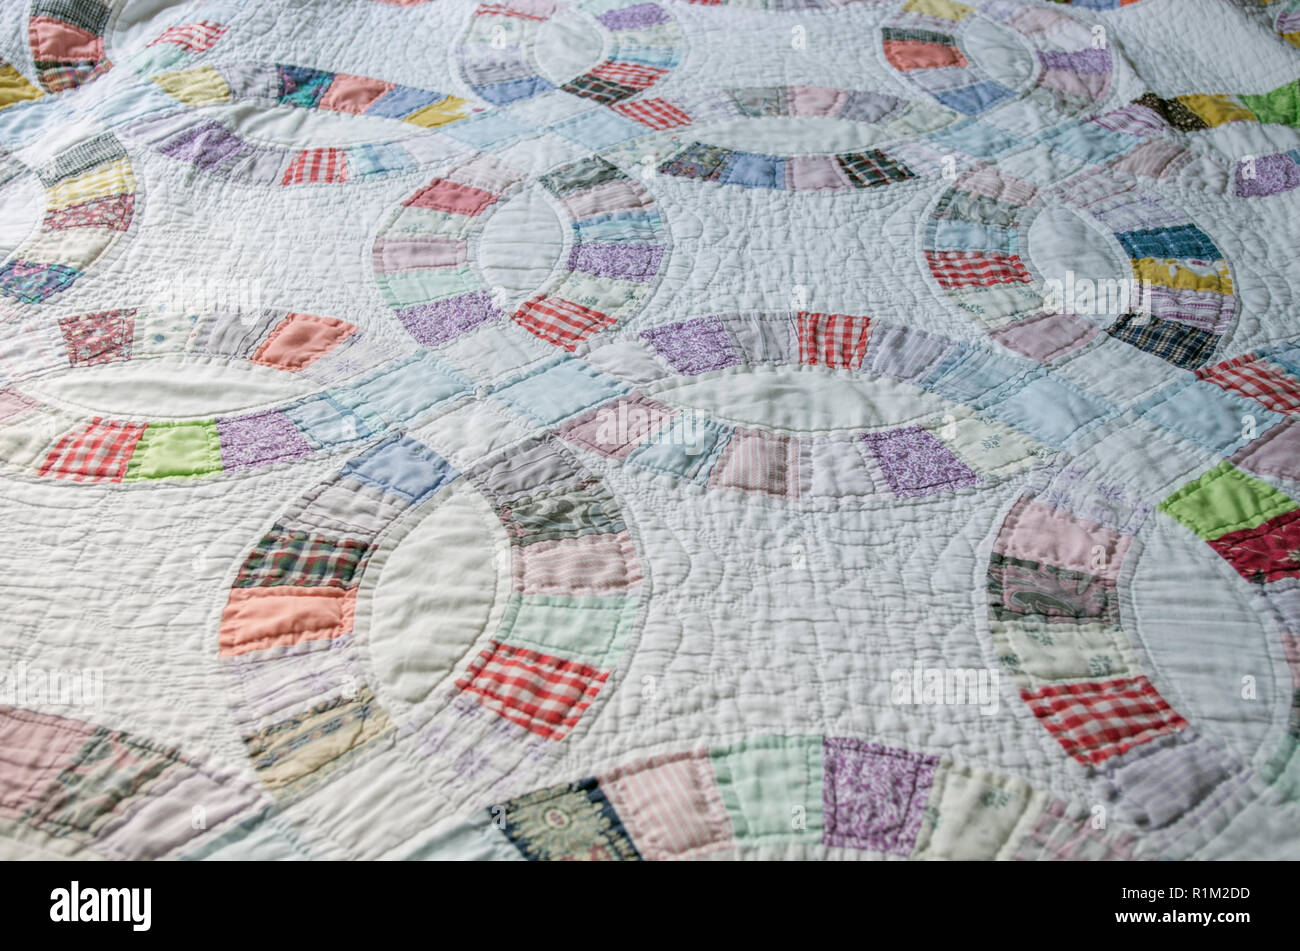 Hand Sewn Quilt Stock Photos Hand Sewn Quilt Stock Images Alamy